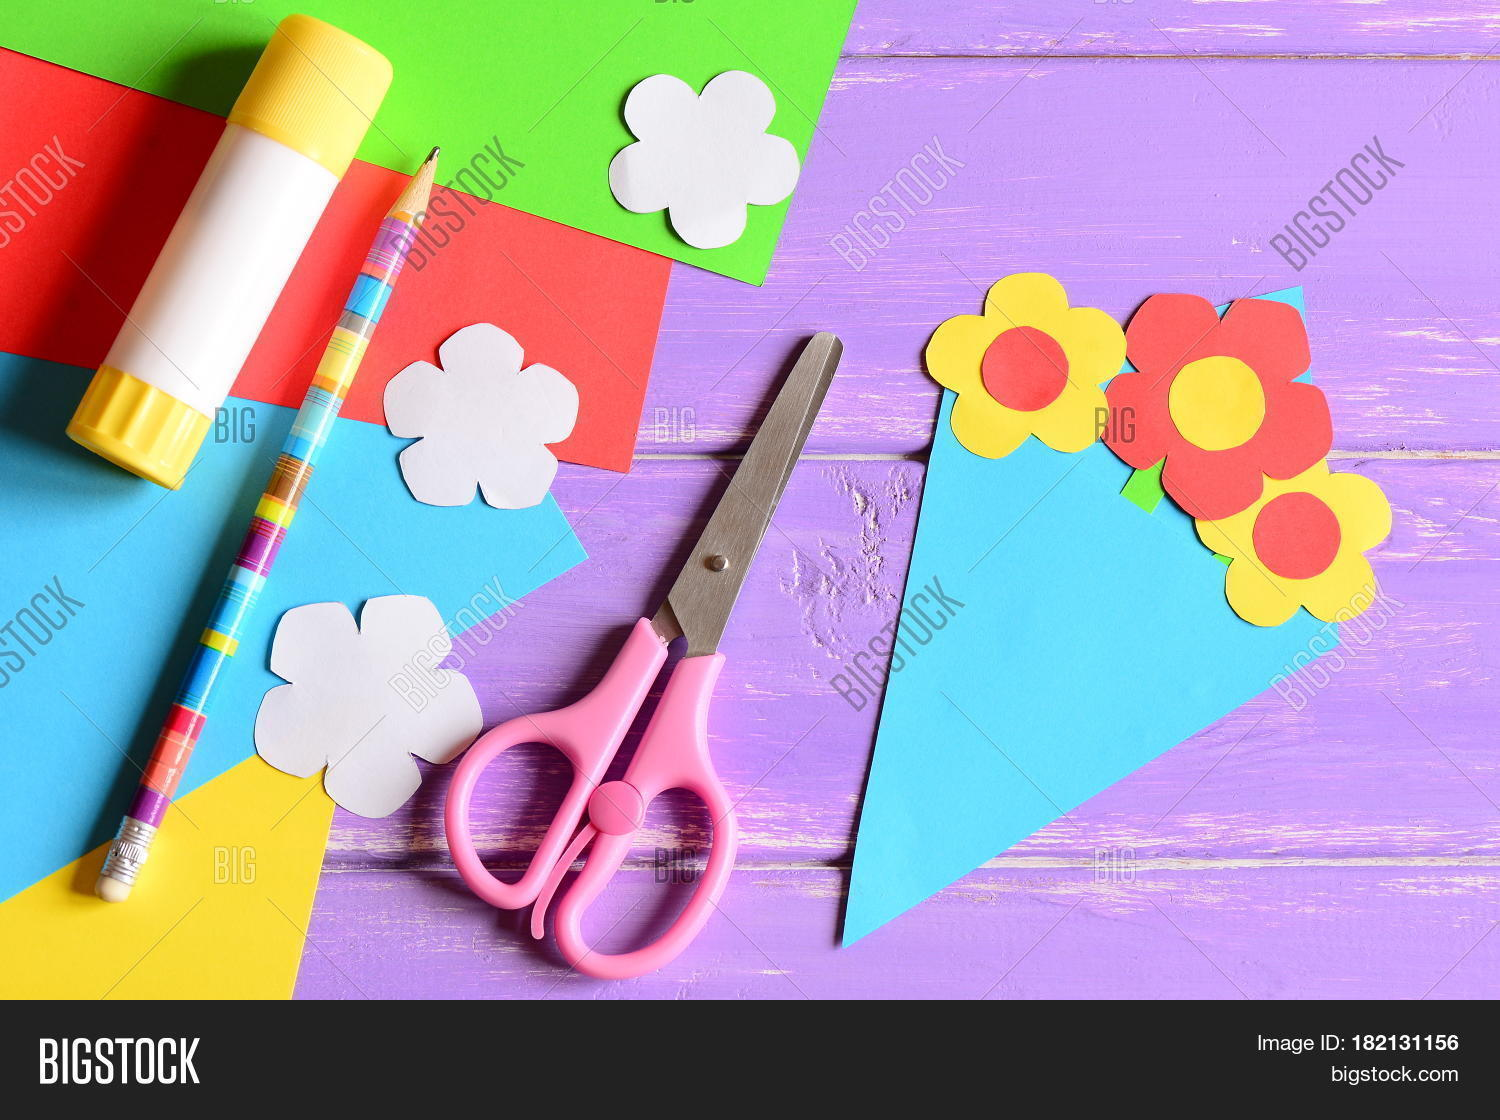 Creating Paper Crafts Image Photo Free Trial Bigstock